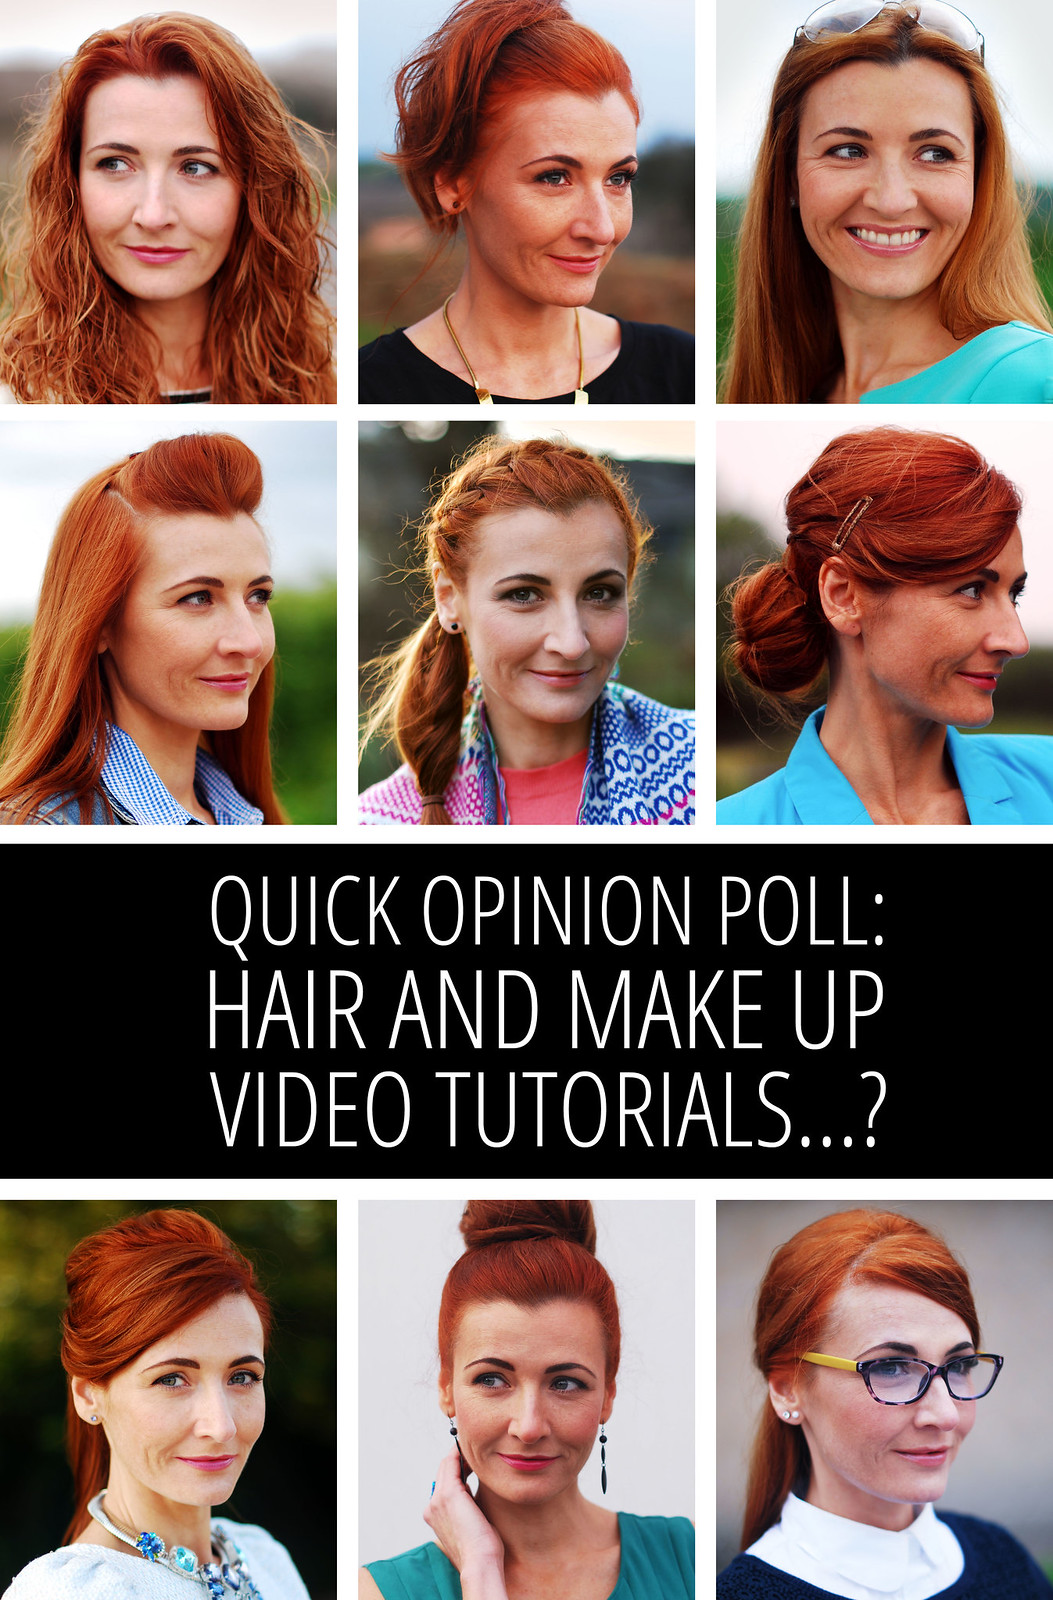 Quick opinion poll: Hair and make up tutorials for the over 40s? Are they of any interest?